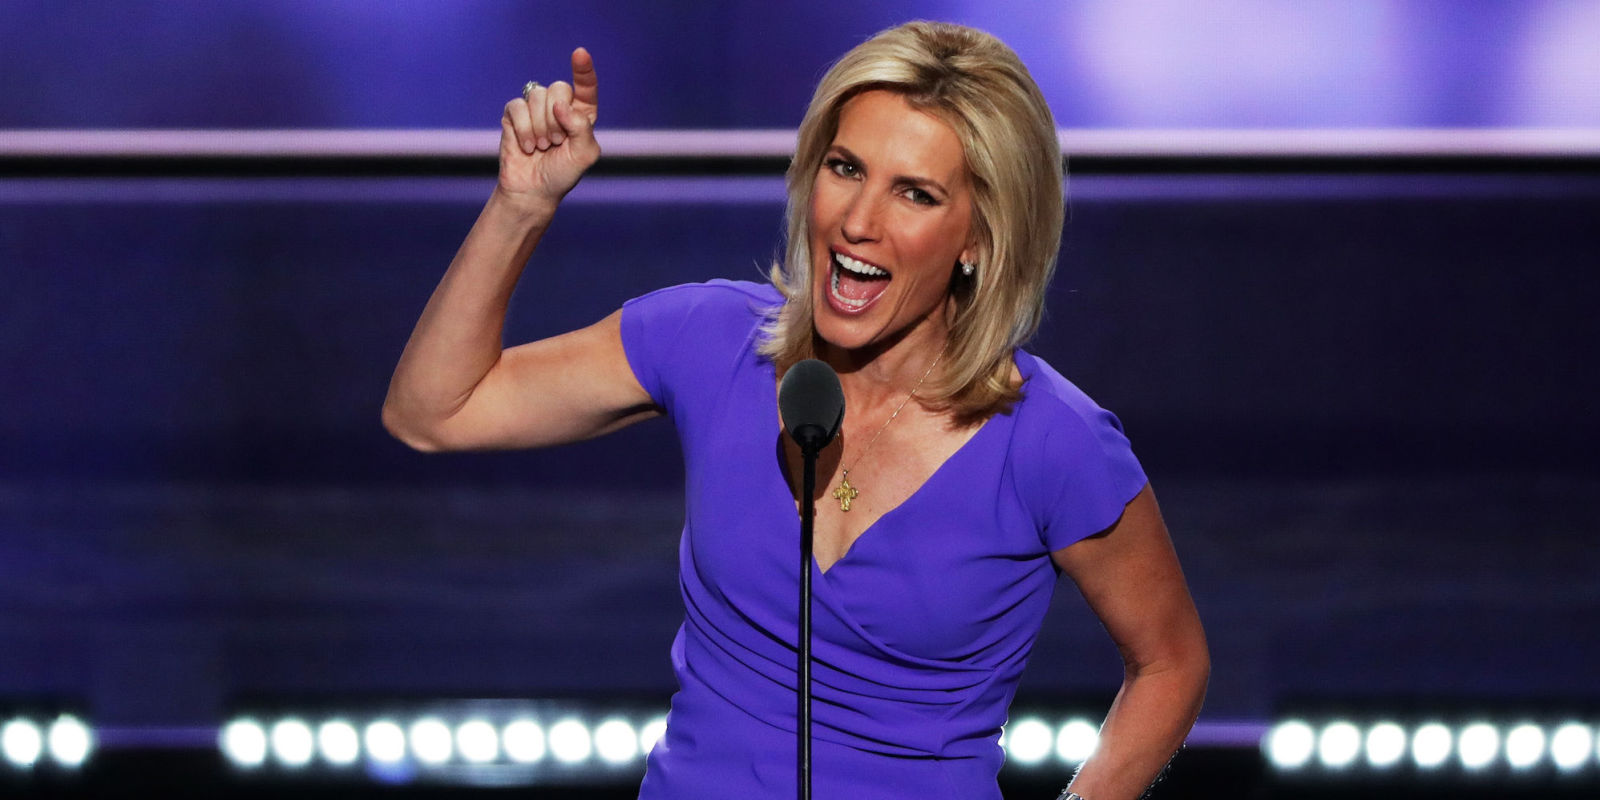 Did Laura Ingraham Mean to Make This Gesture?